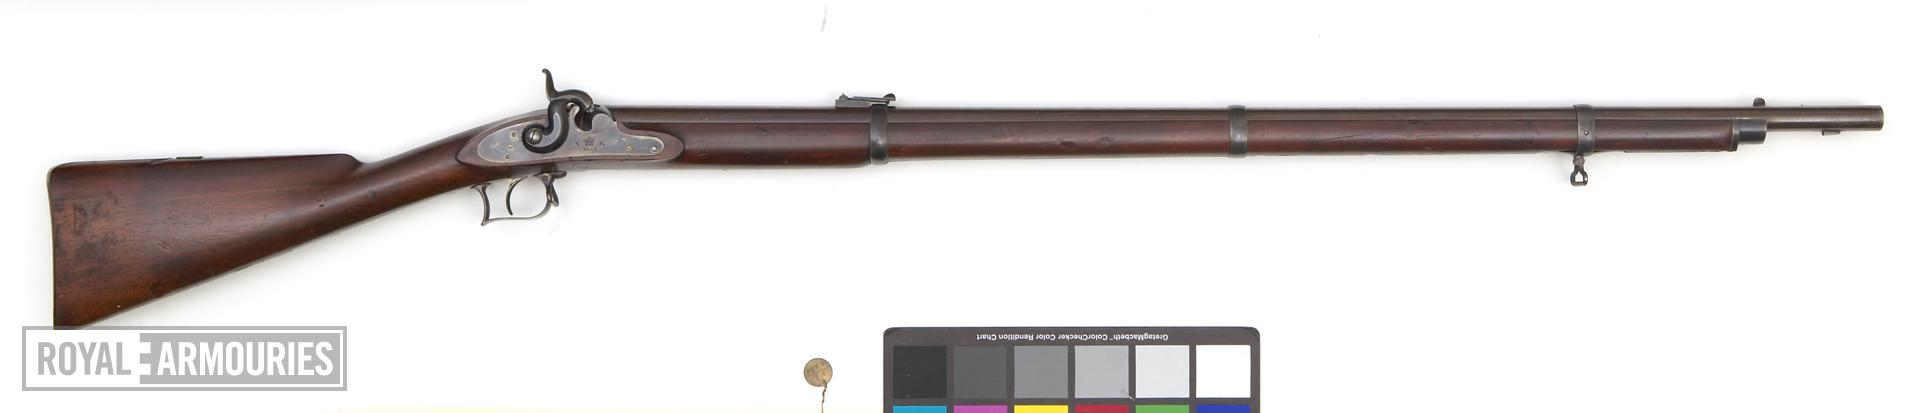 Percussion muzzle-loading rifle - By William Greener